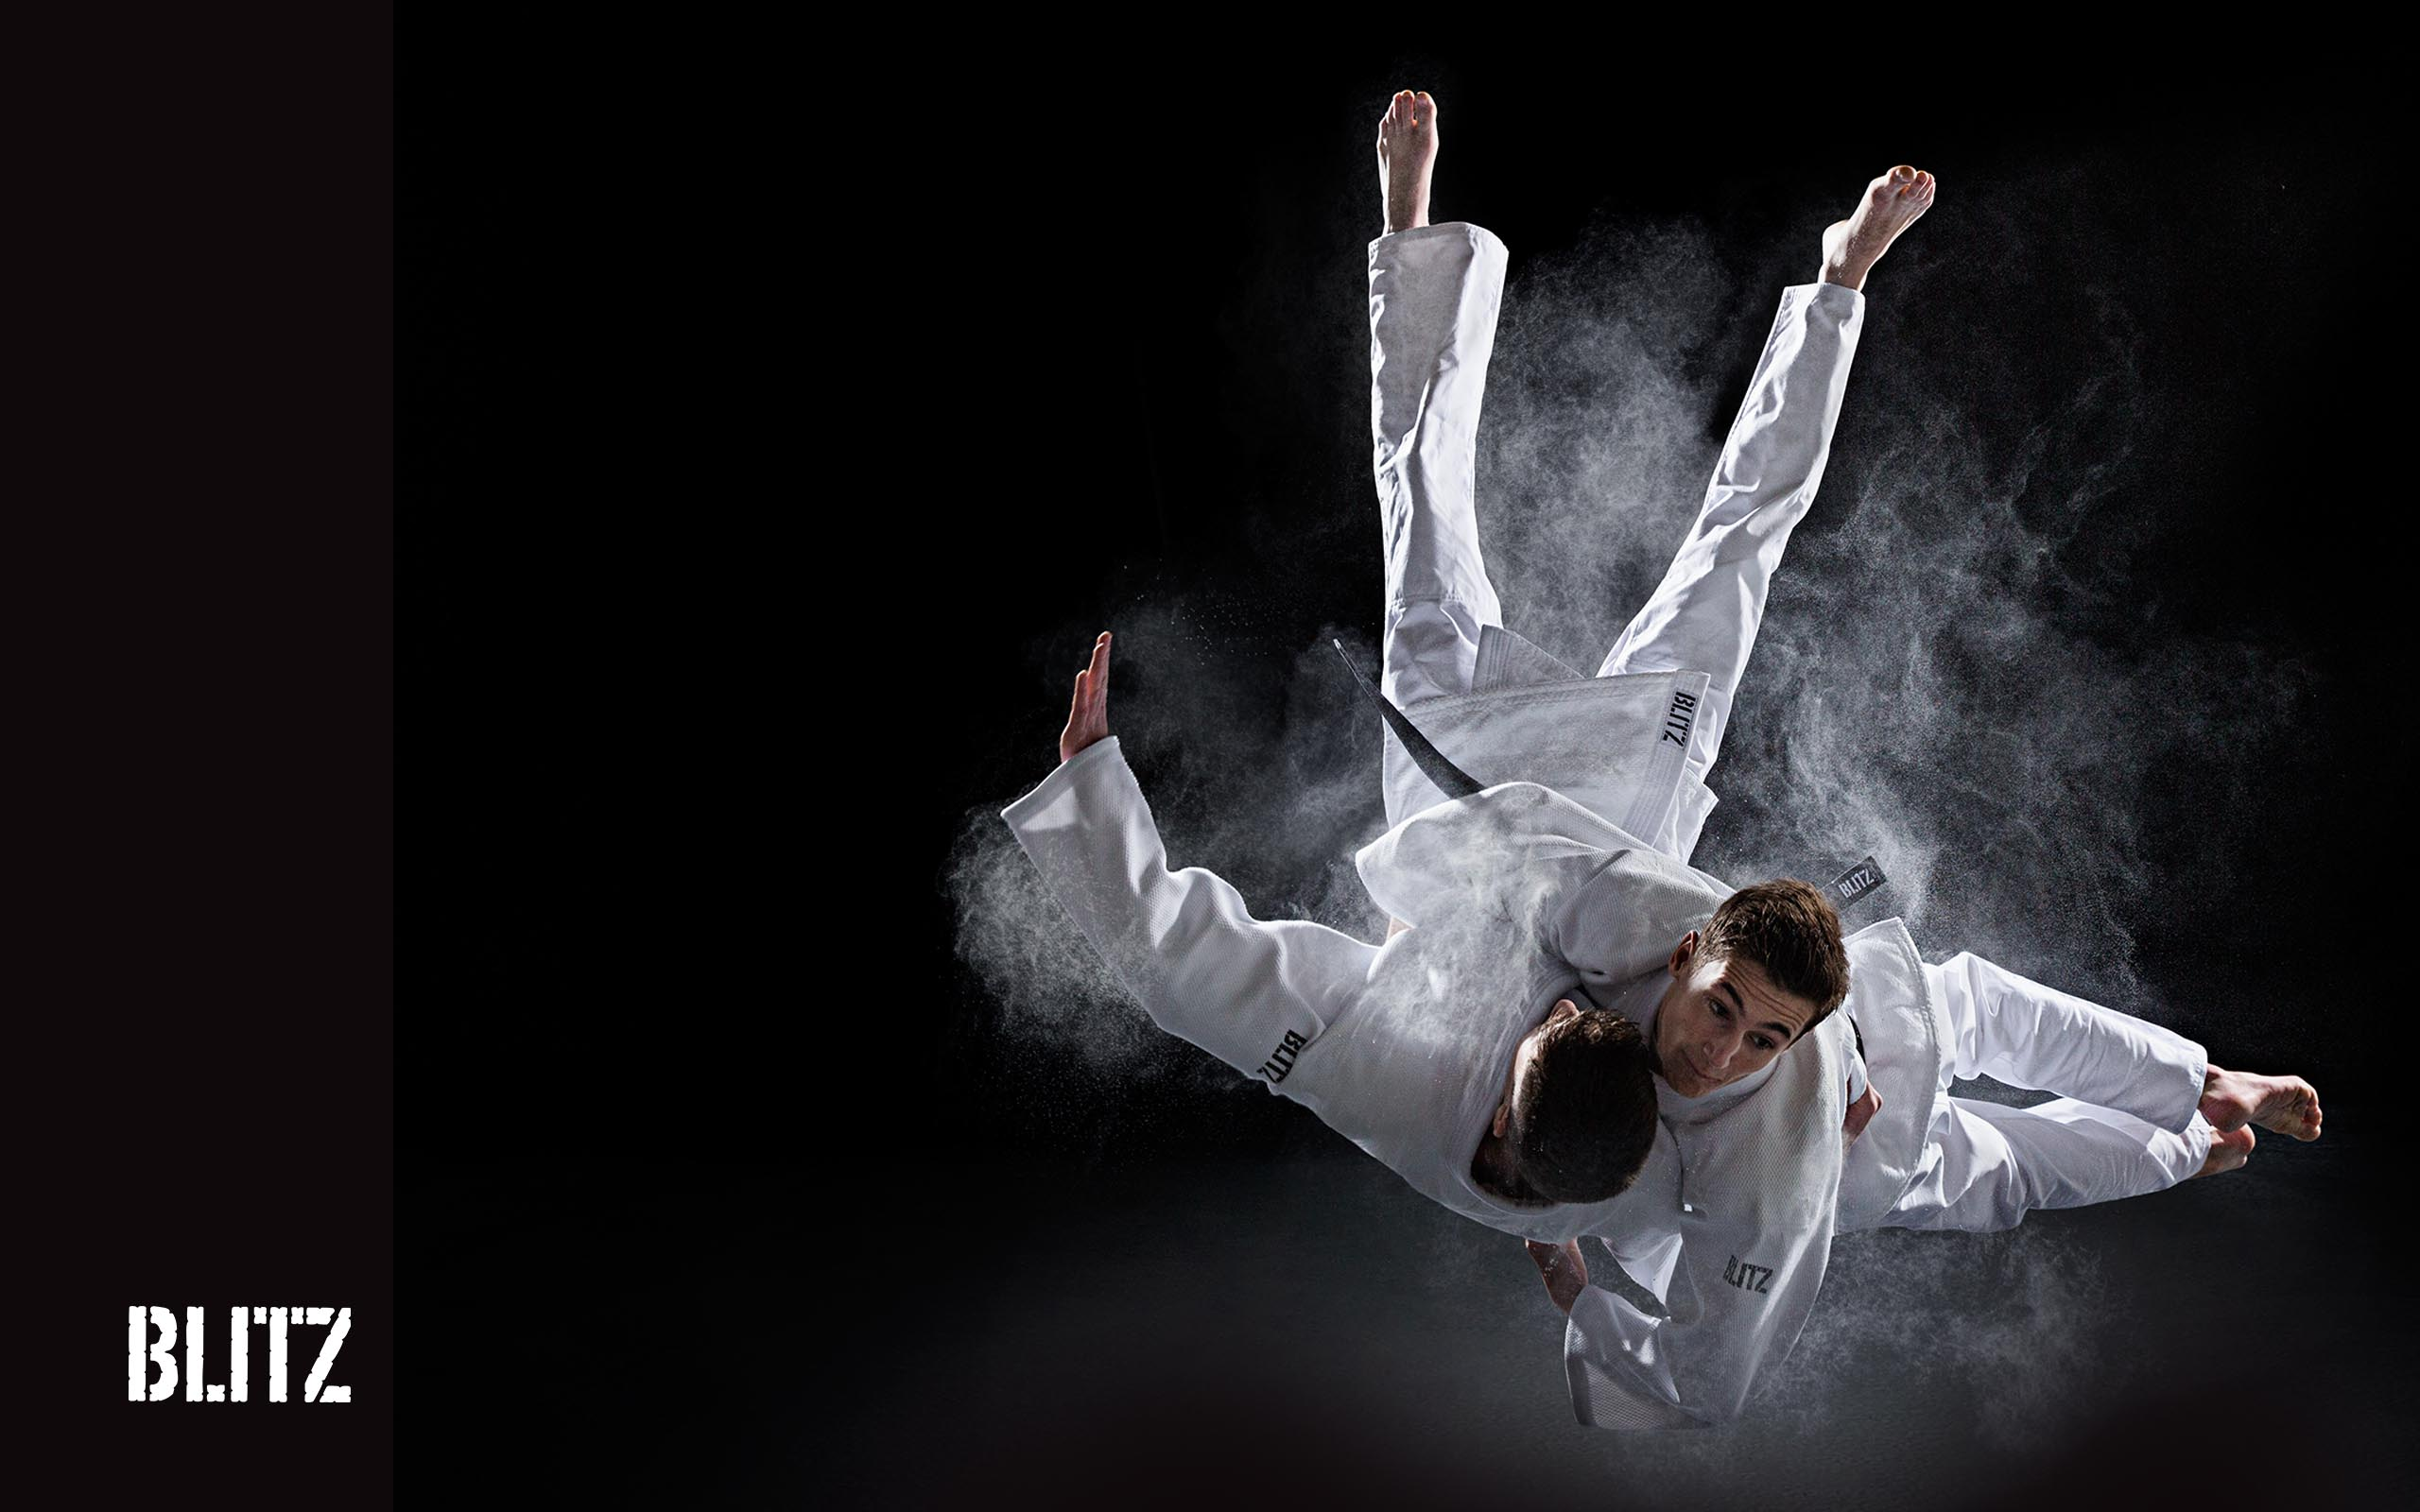 download the latest martial arts wallpapers from blitz